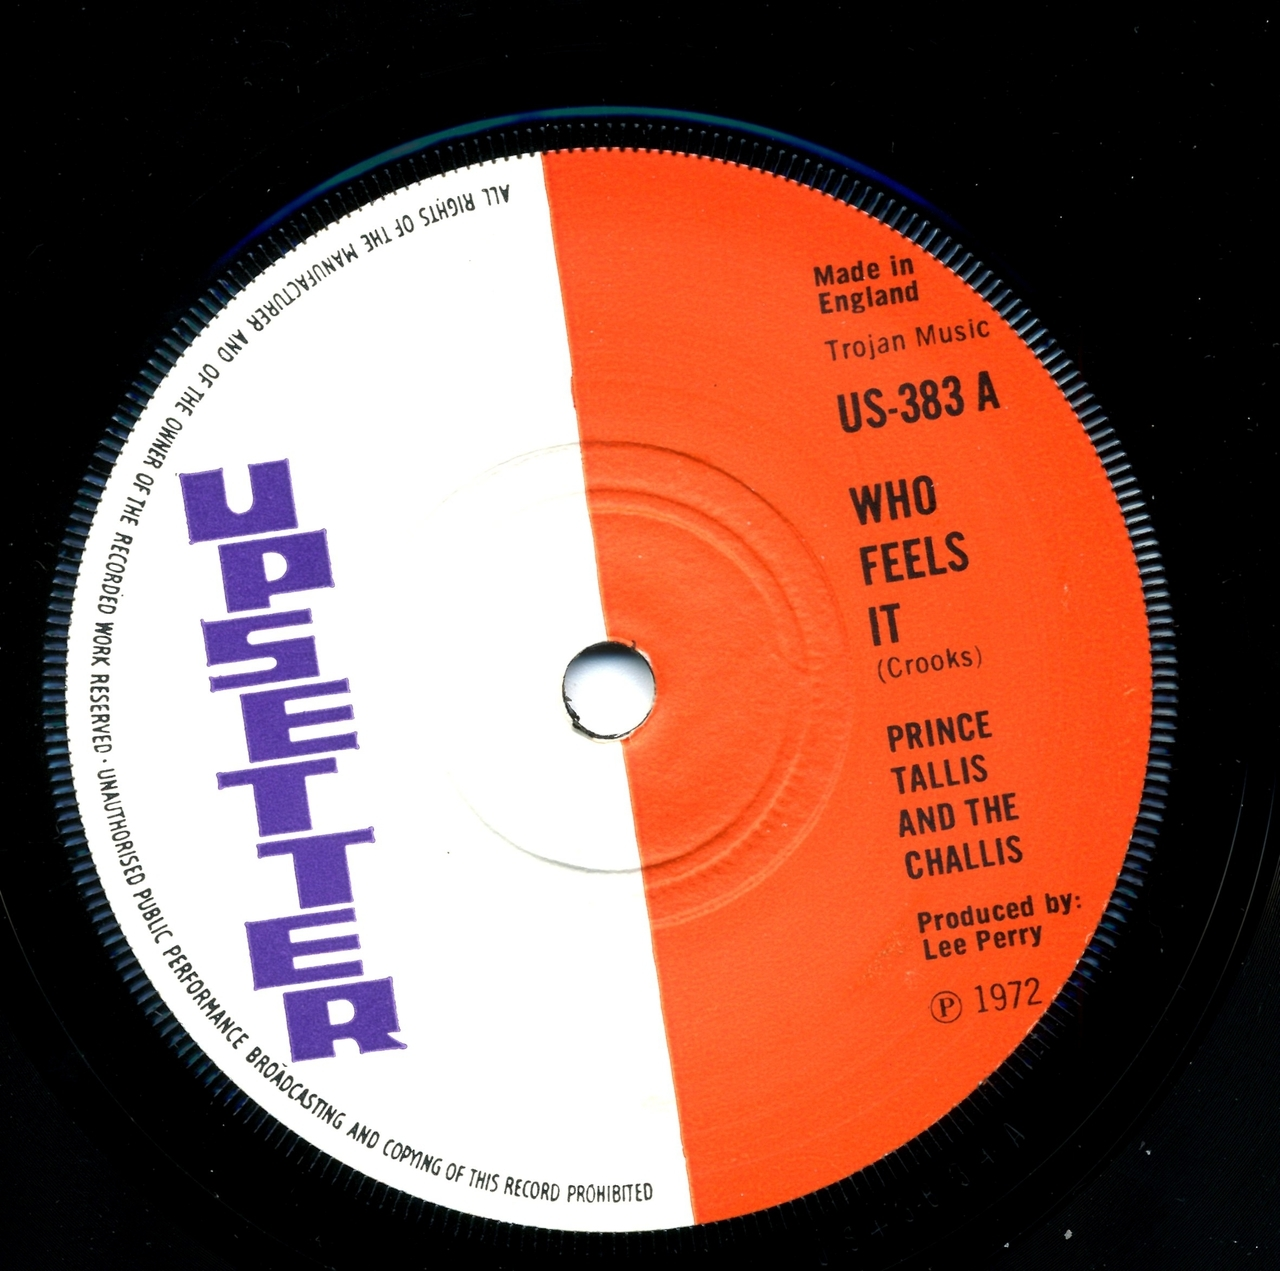 Prince Tallis The Challis - Who Feels It / Upsetters - Chapter 2